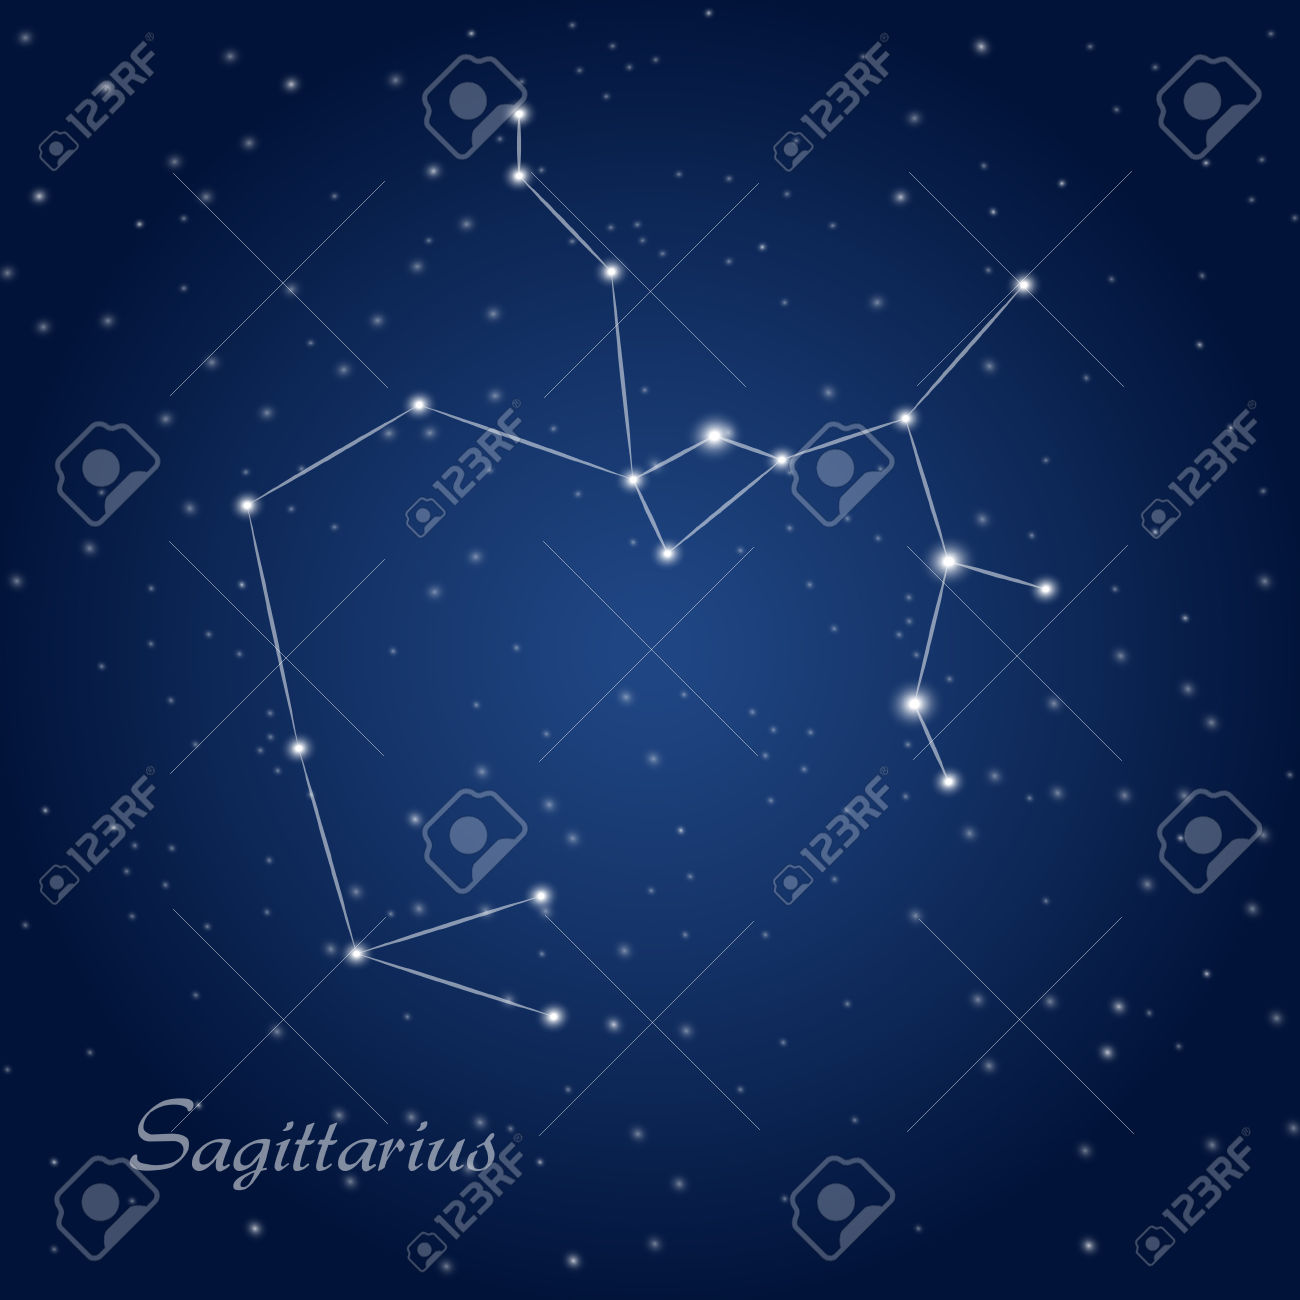 Sagittarius Constellation Zodiac Sign At Starry Night Sky Royalty.